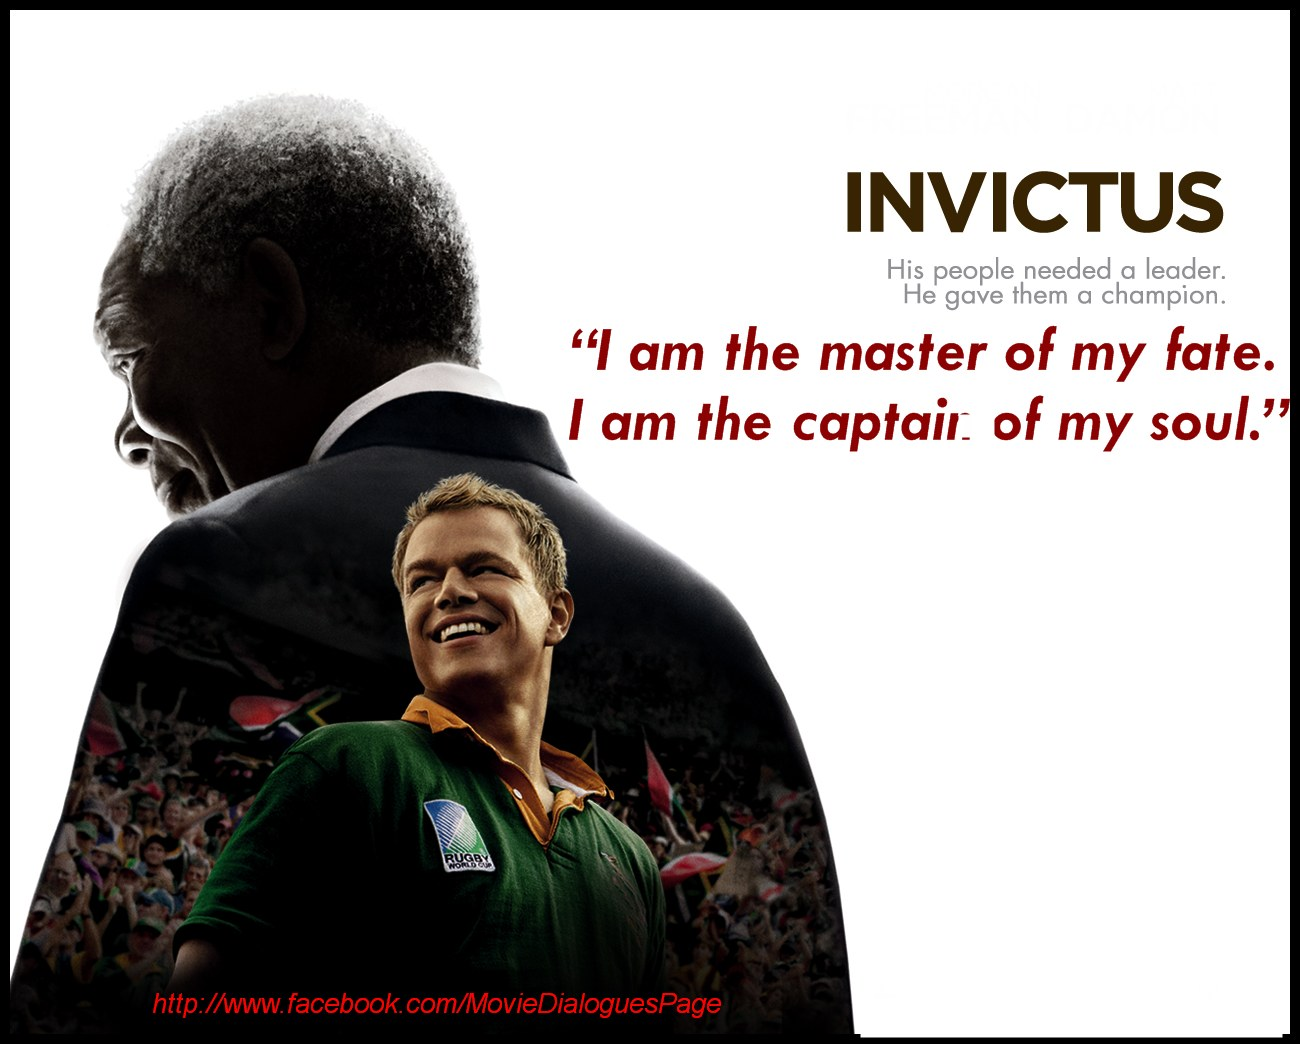 Movie Lines: Movie Quotes And Dialogues: Invictus Movie Quotes